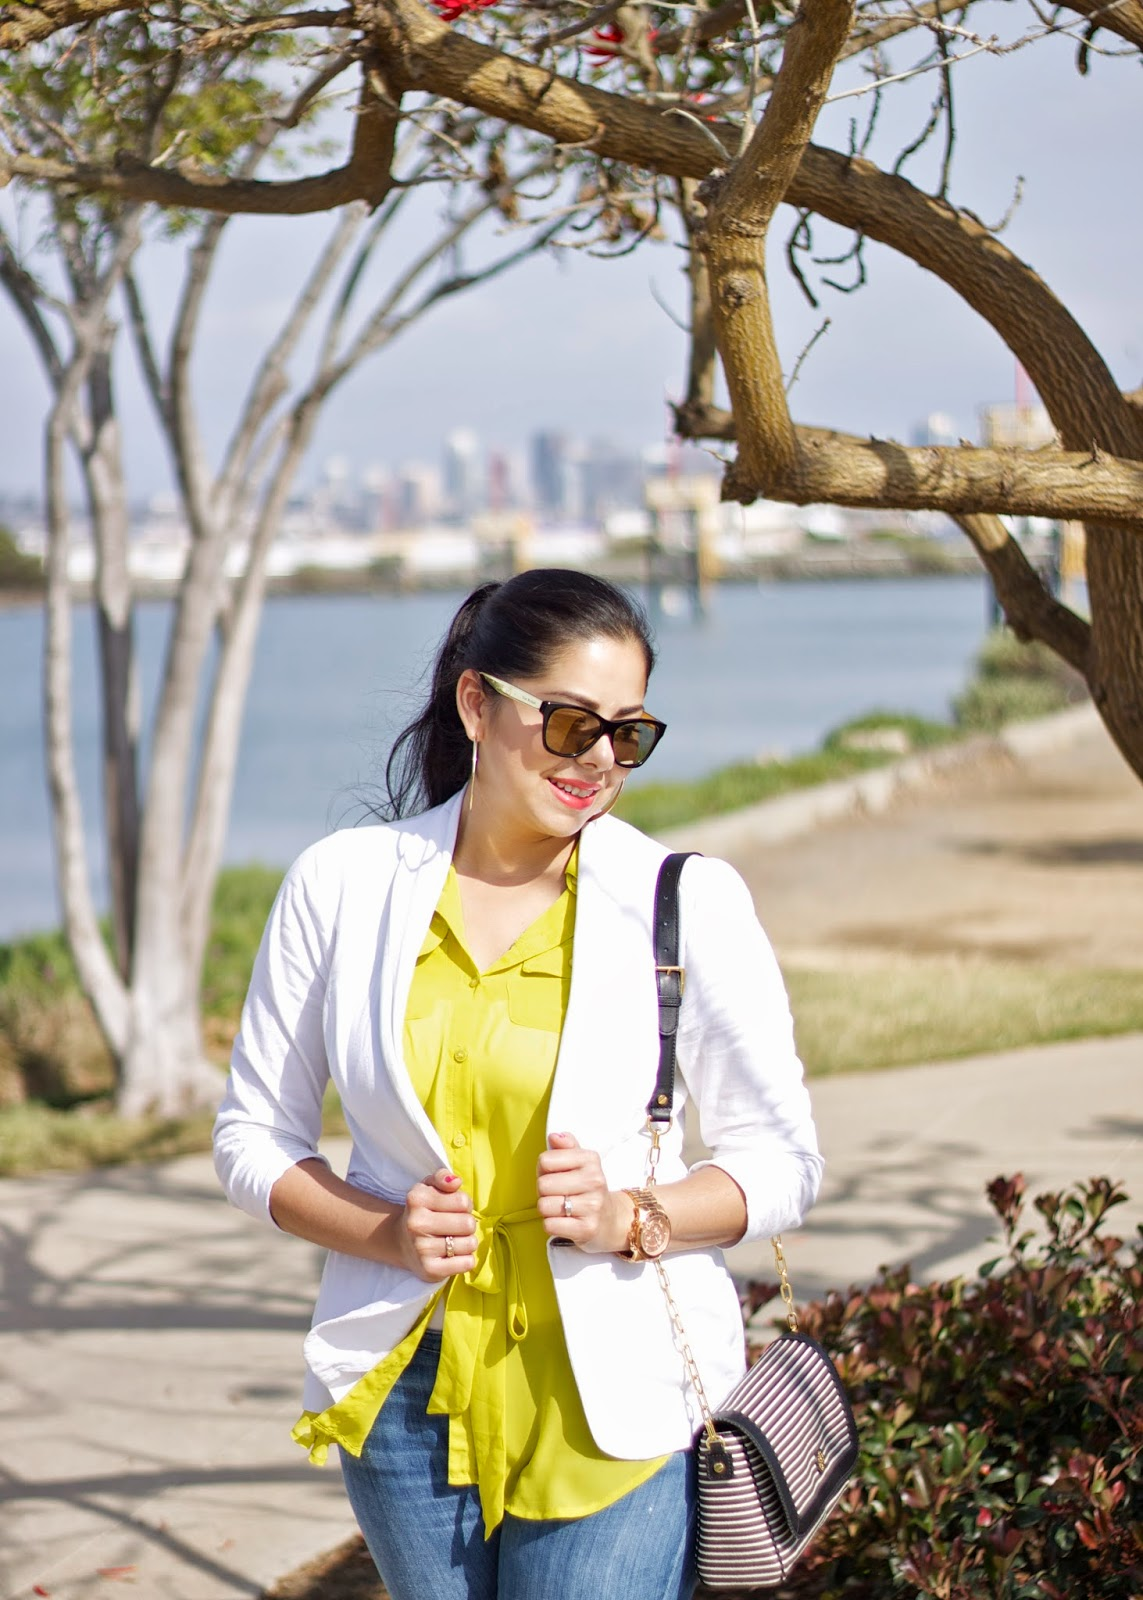 White and Yellow Outfit, White Blazer and yellow top, walking around Liberty Station, Liberty Station San Diego, Downtown San Diego